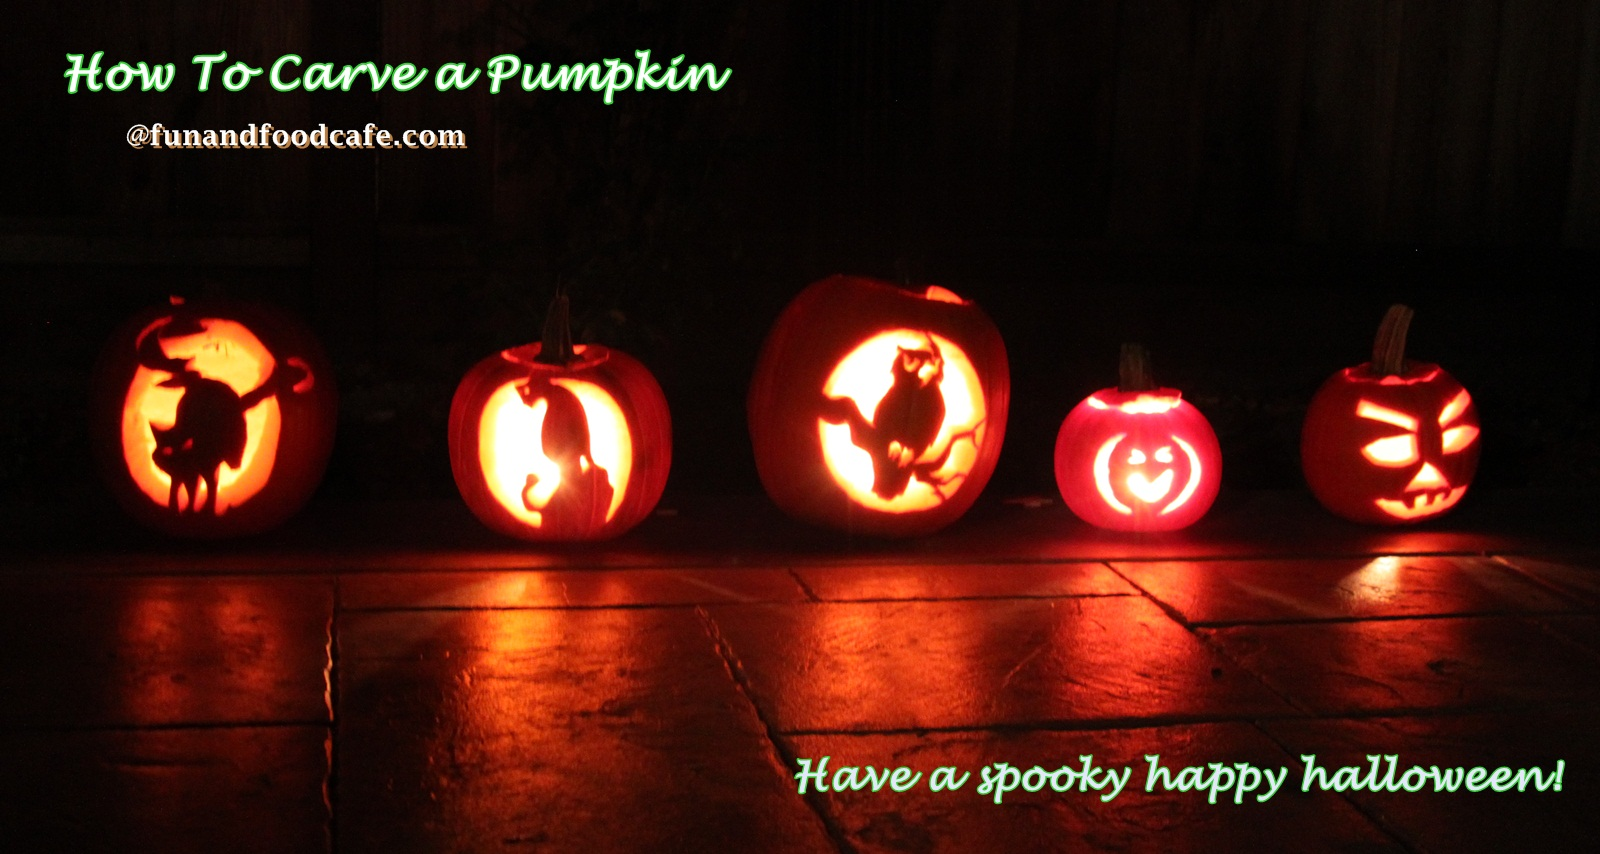 how to carve a pumpkin | fun and food cafe